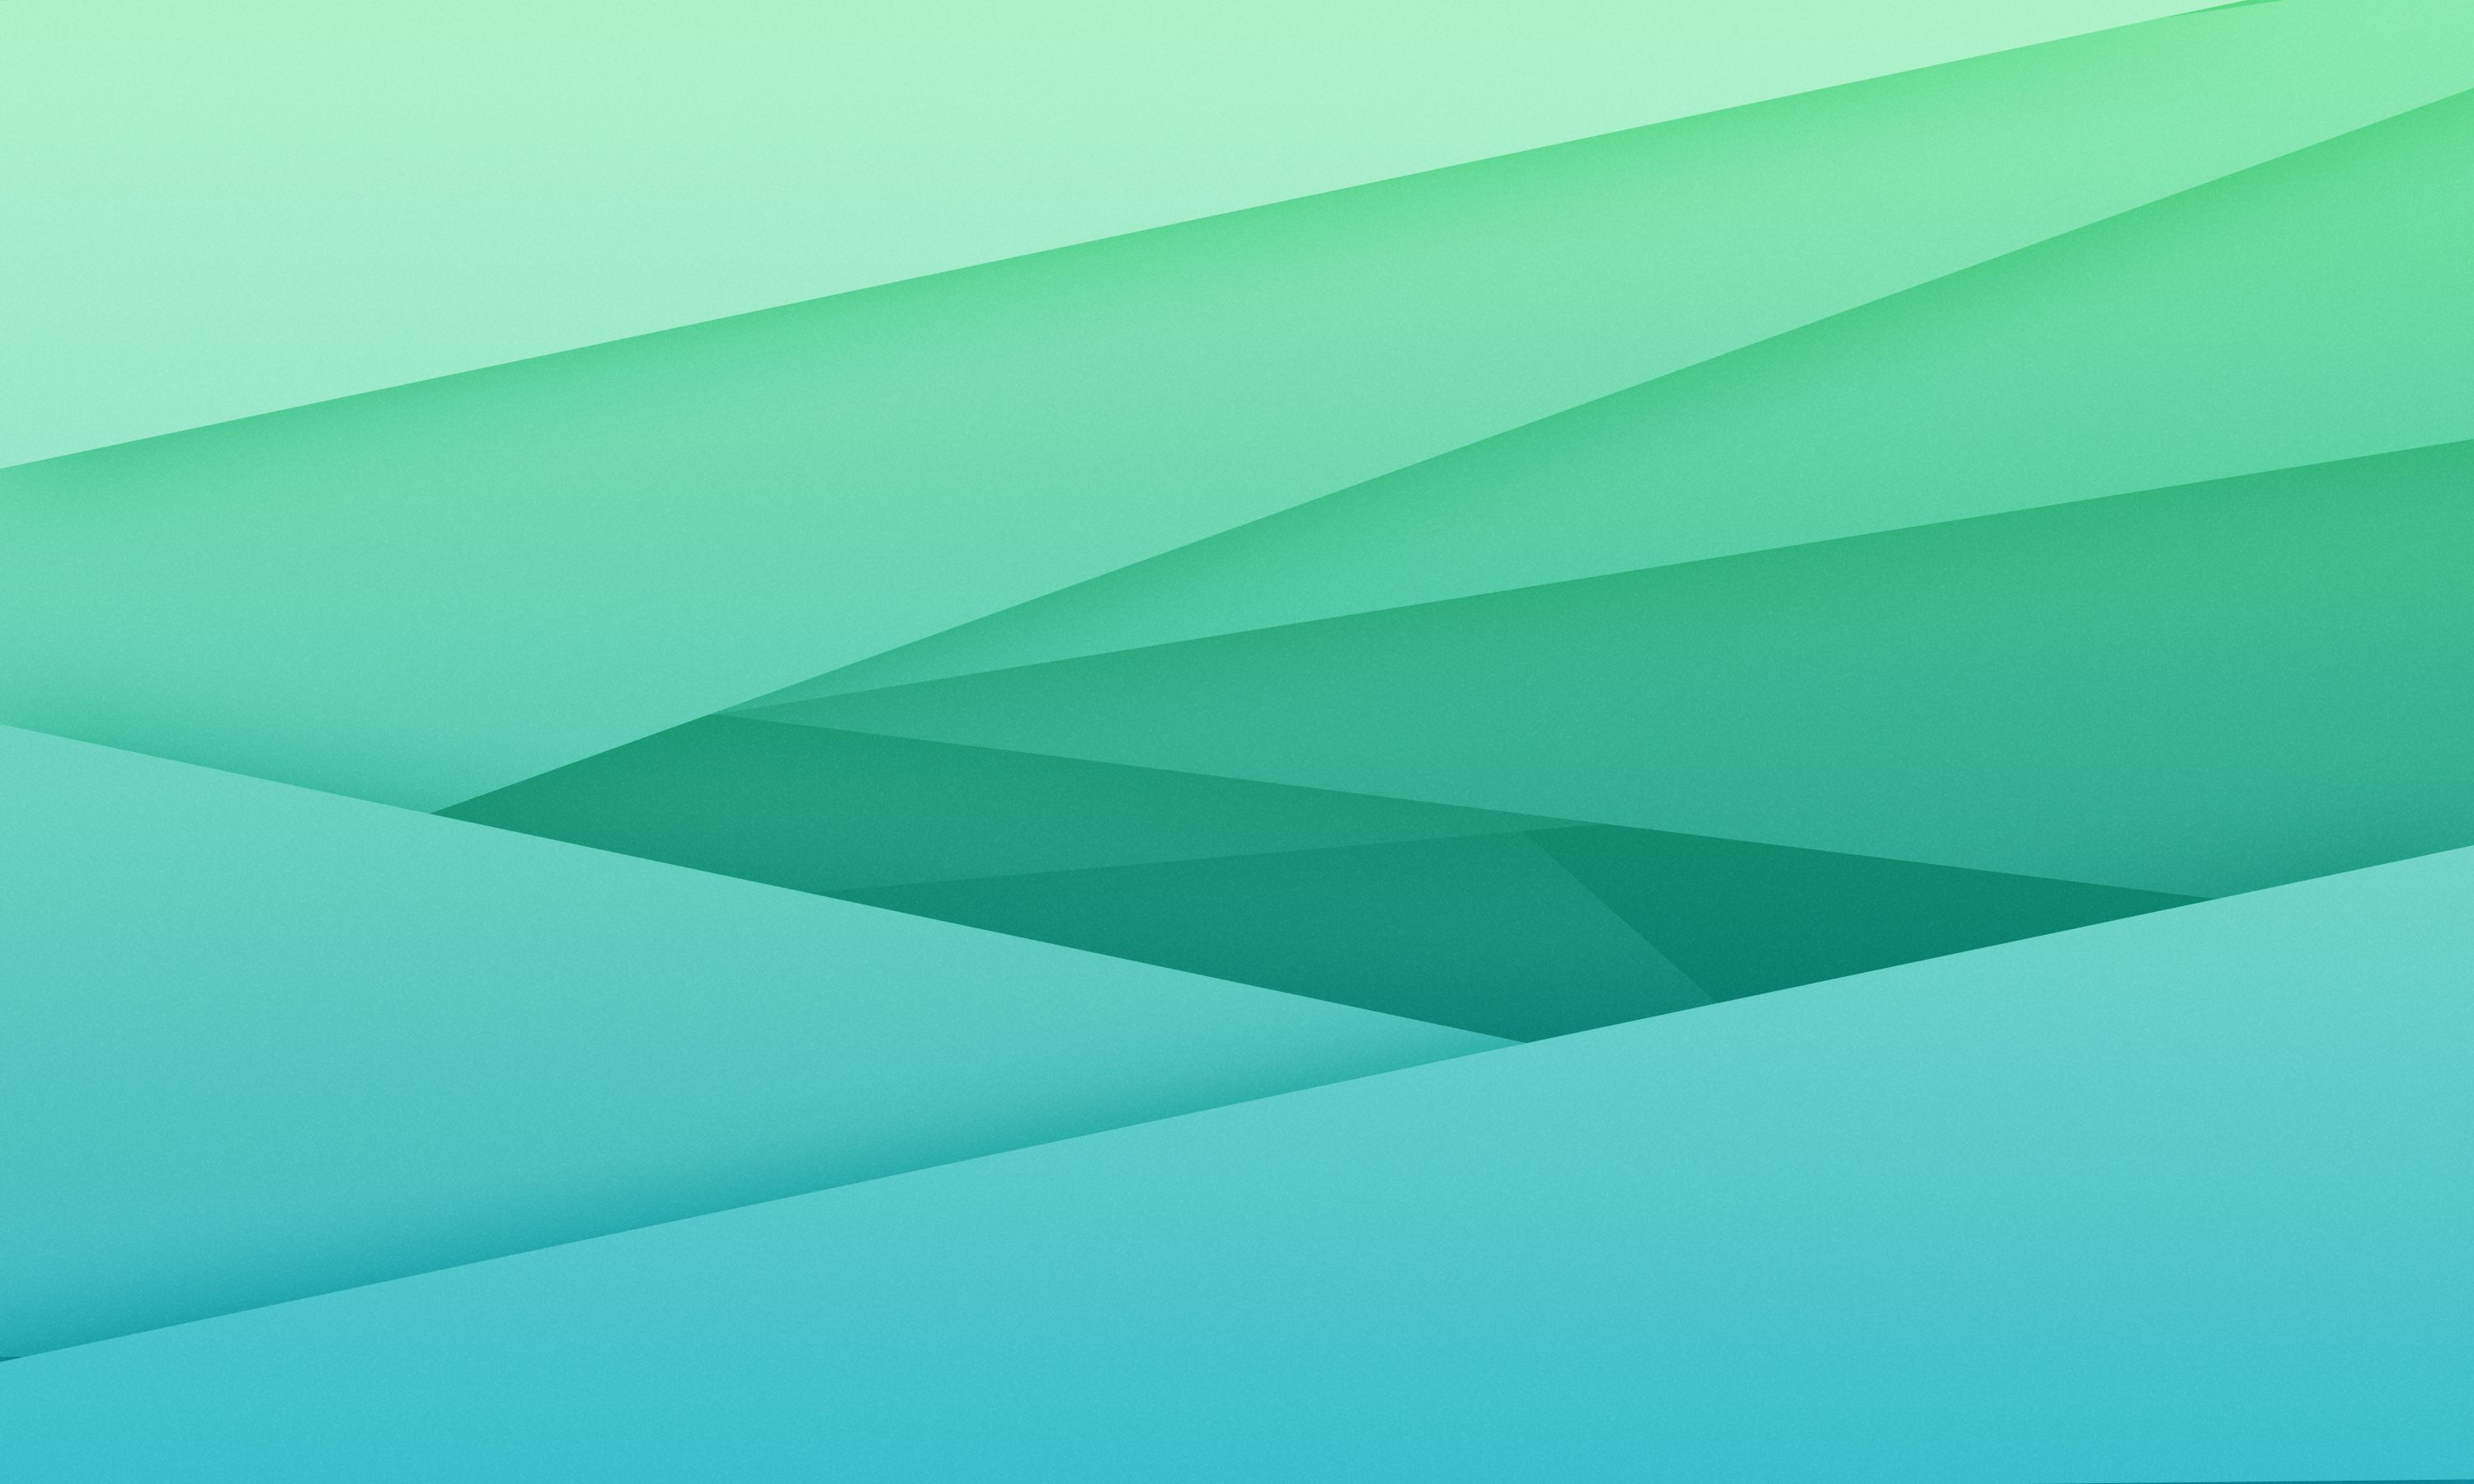 Abstract Blue And Green Design Background Green Design Abstract